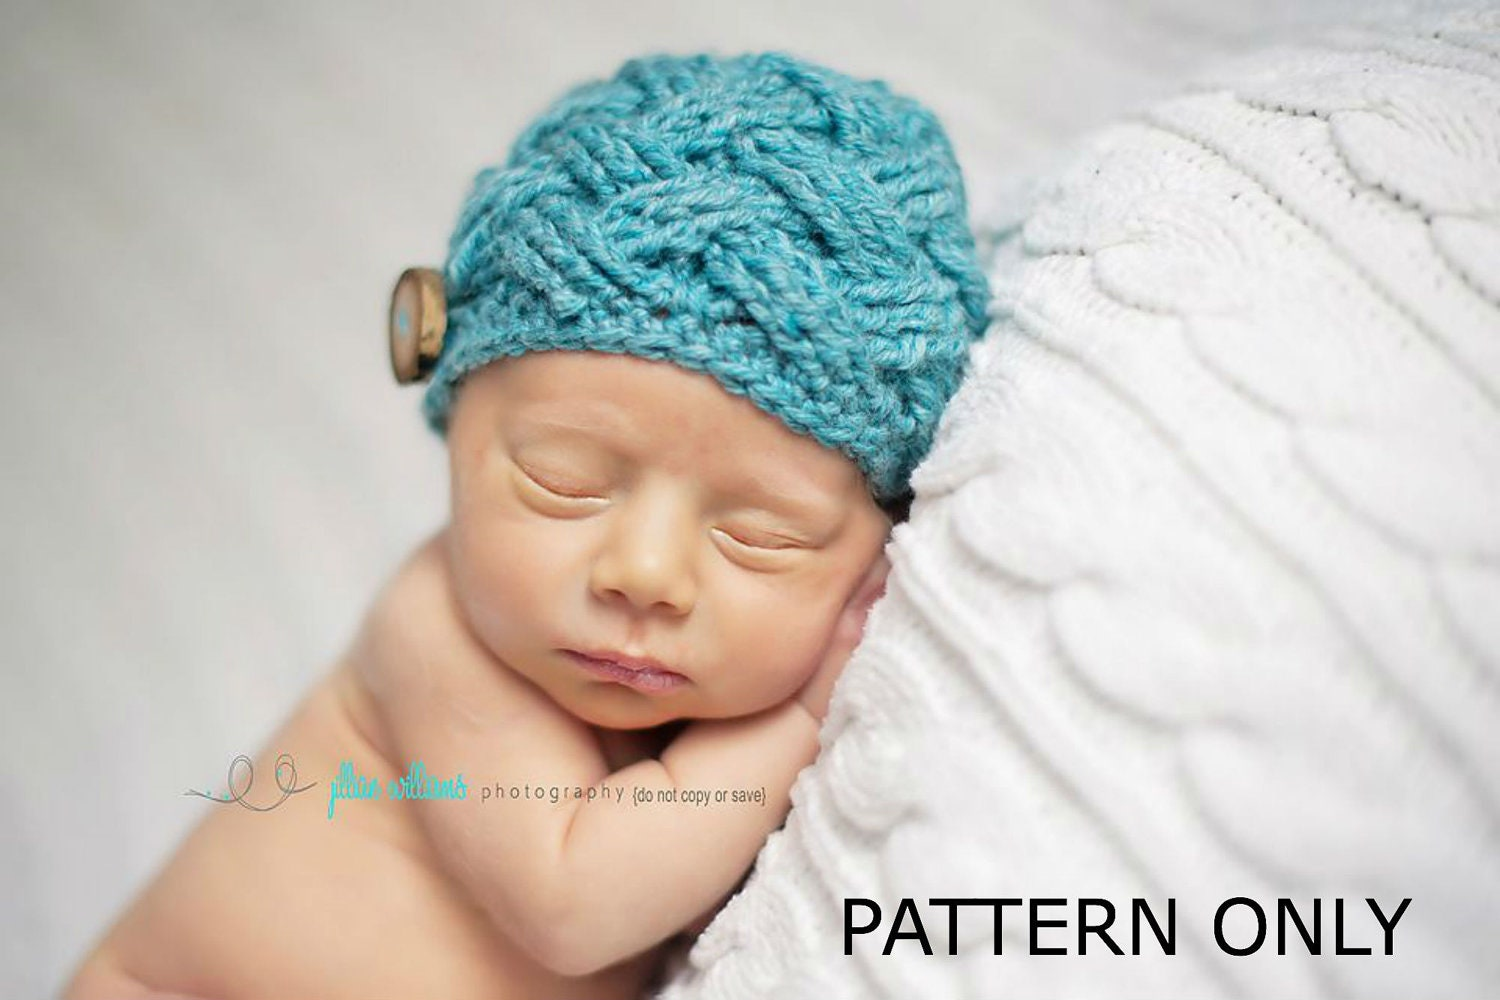 Crochet Hat Patterns With Instructions : Entrelac beanie crochet pattern crochet pattern crochet